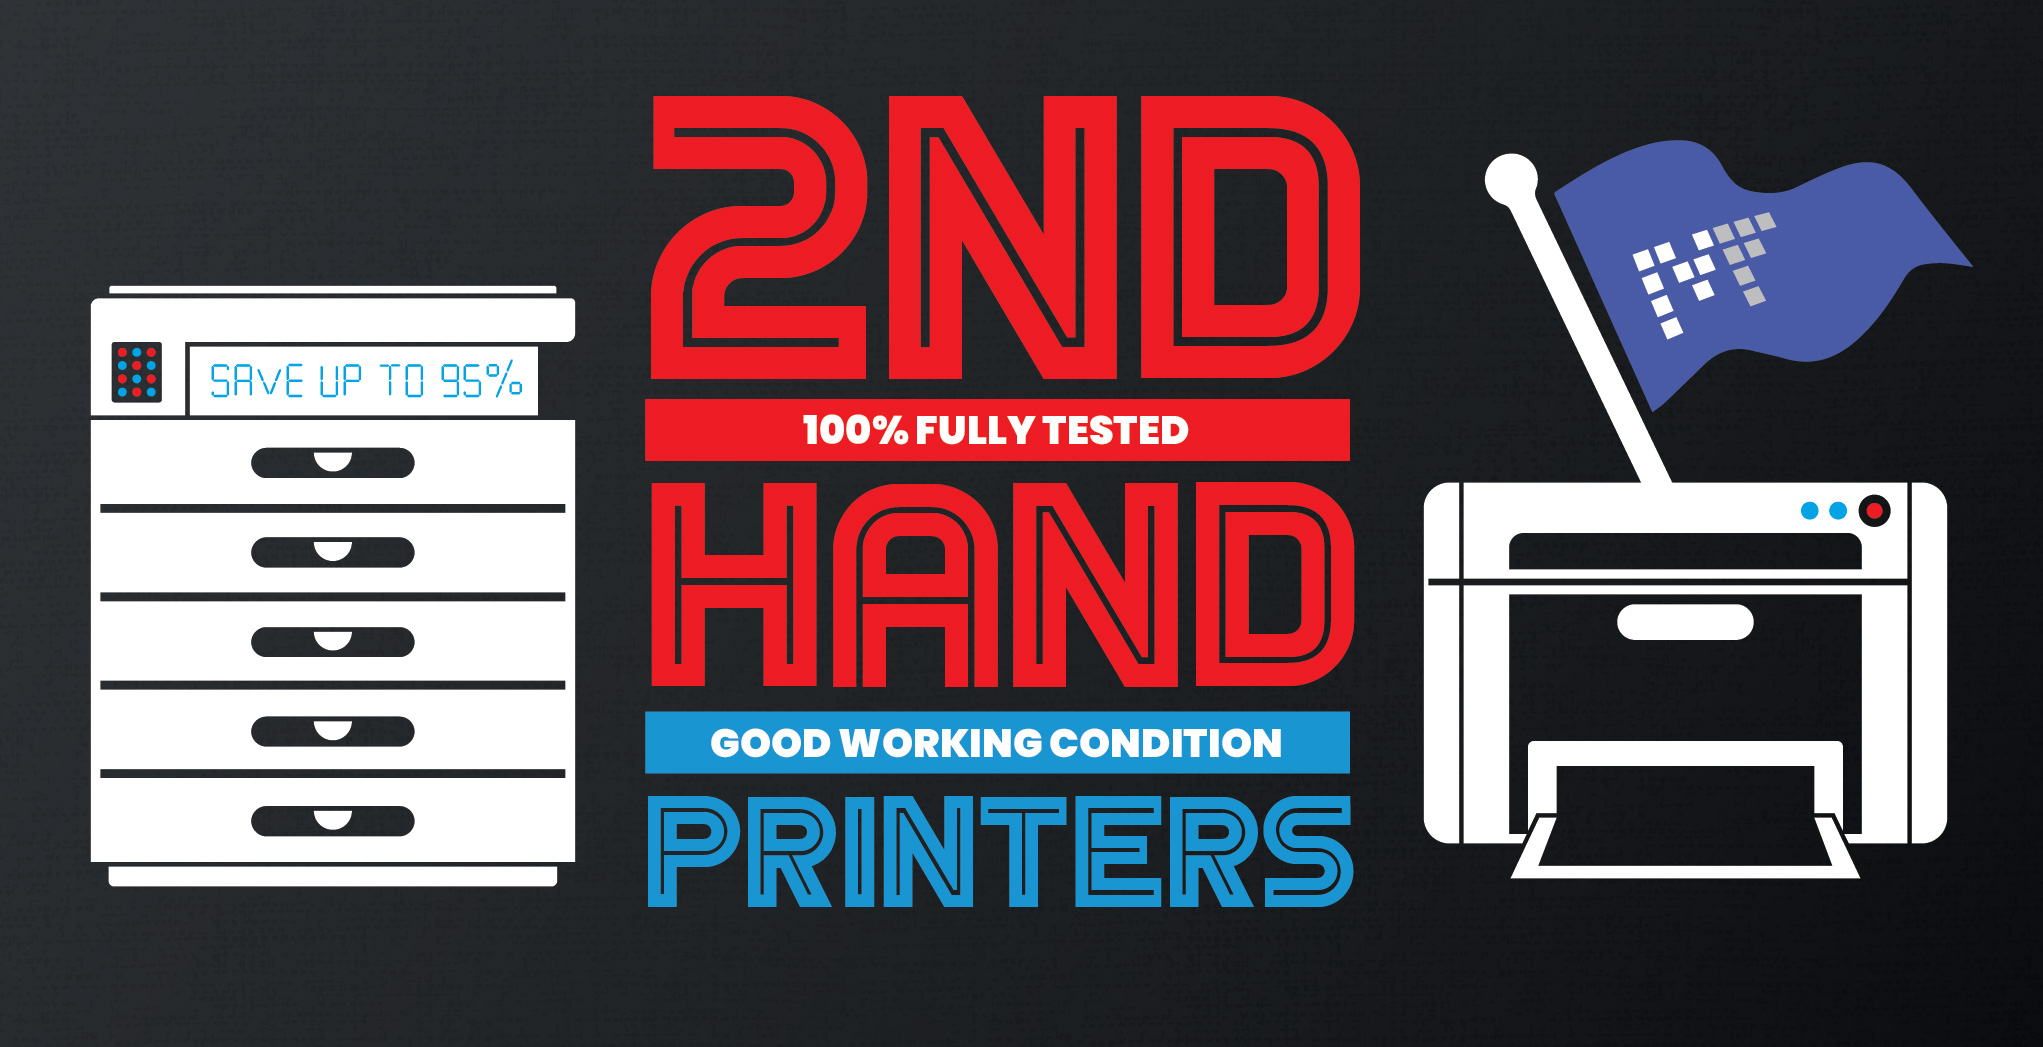 2nd Hand Printers - Different Brands, 100% Tested